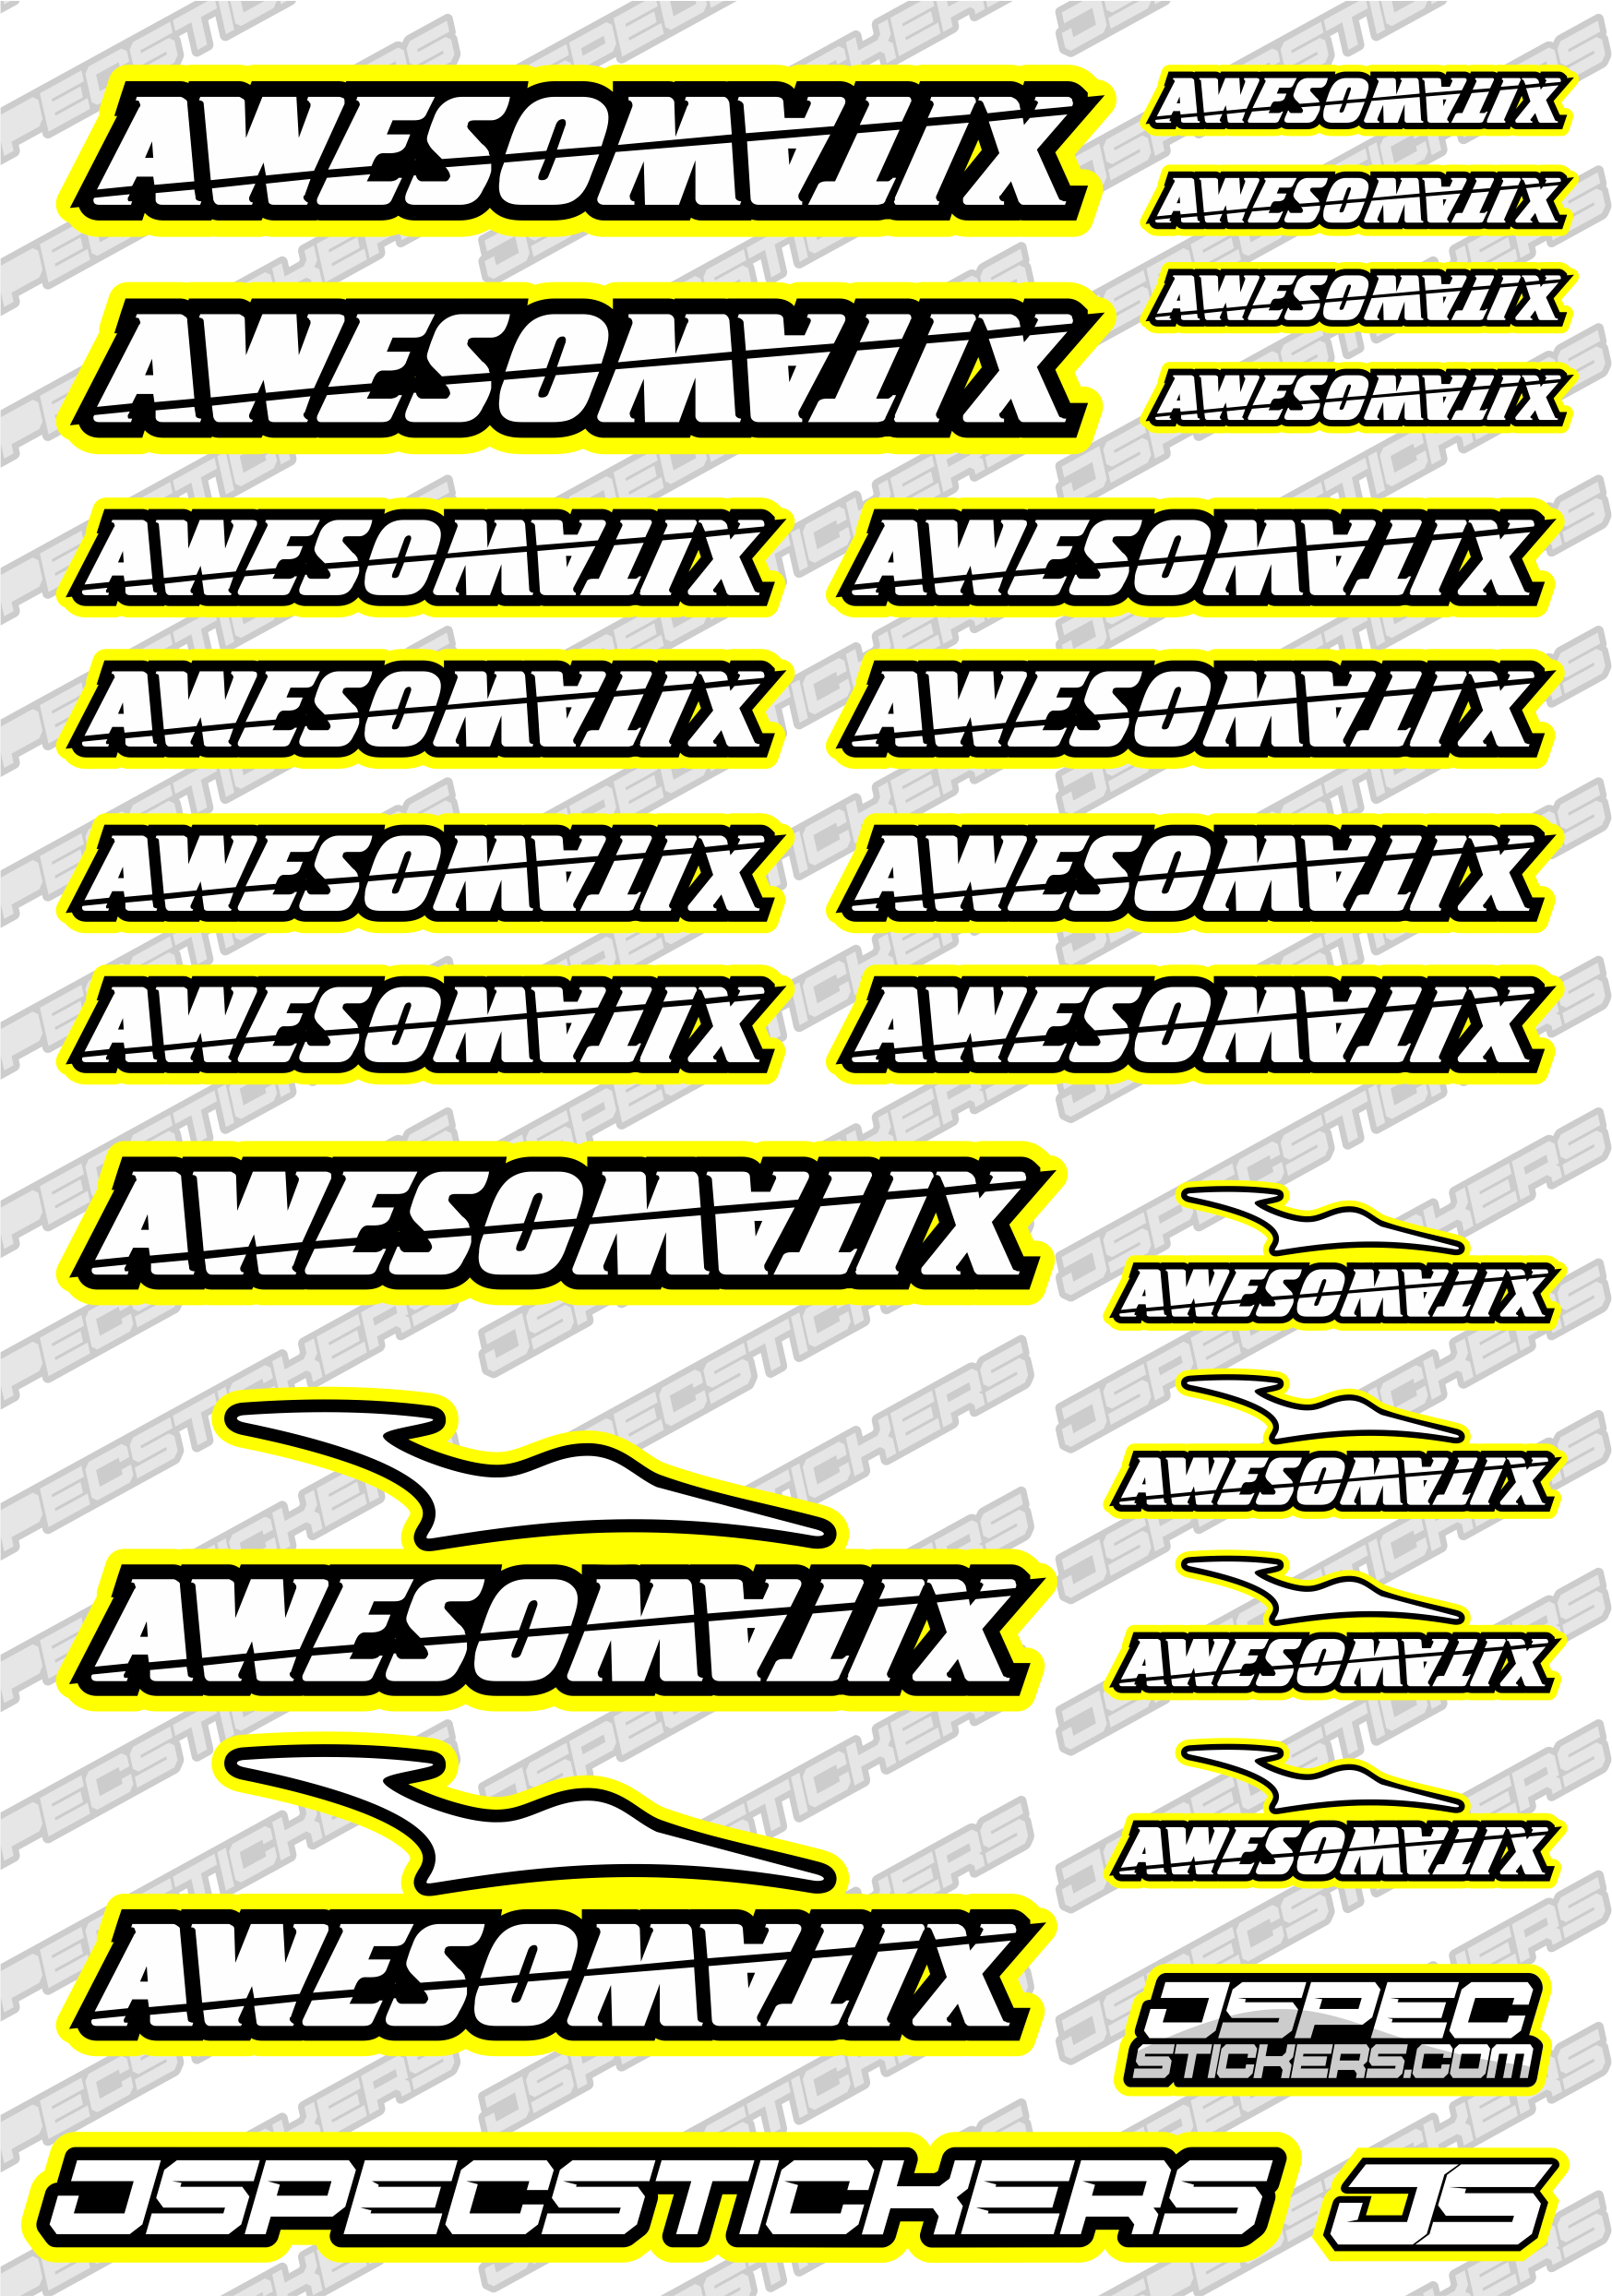 AWESOMATIX RC STICKER SHEET A5 'RK EDITION' - Jspec Stickers